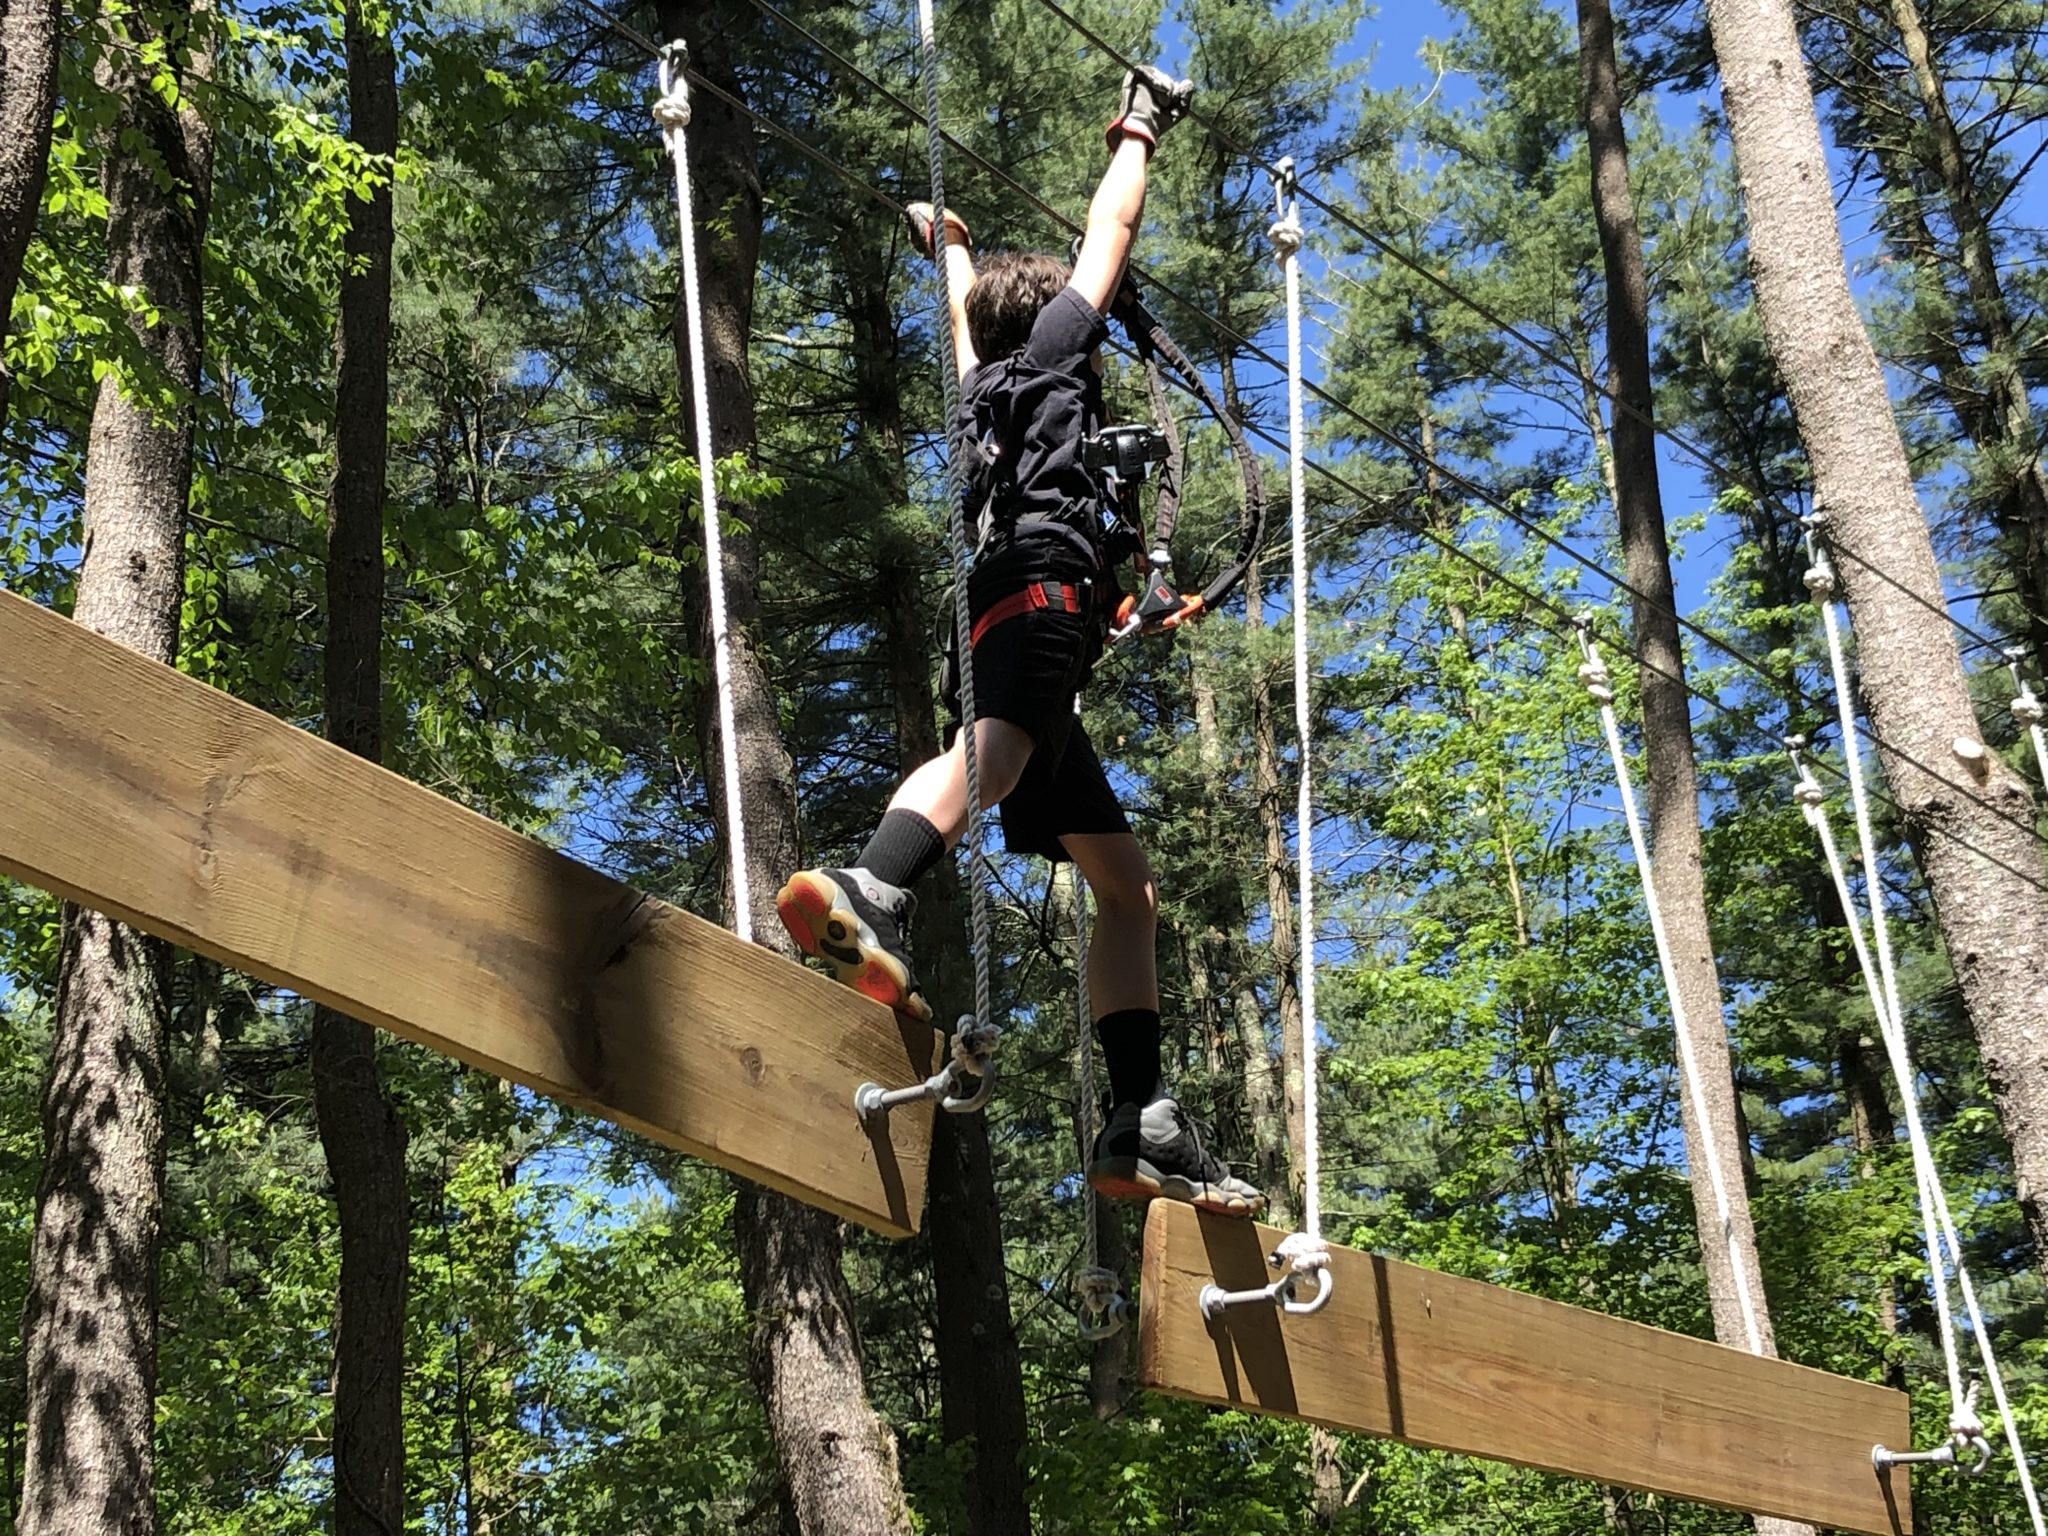 Boundless Adventures Aerial Park is a FUN all level ropes course in western Massachusetts. Spend the day traversing the course with your family this summer.